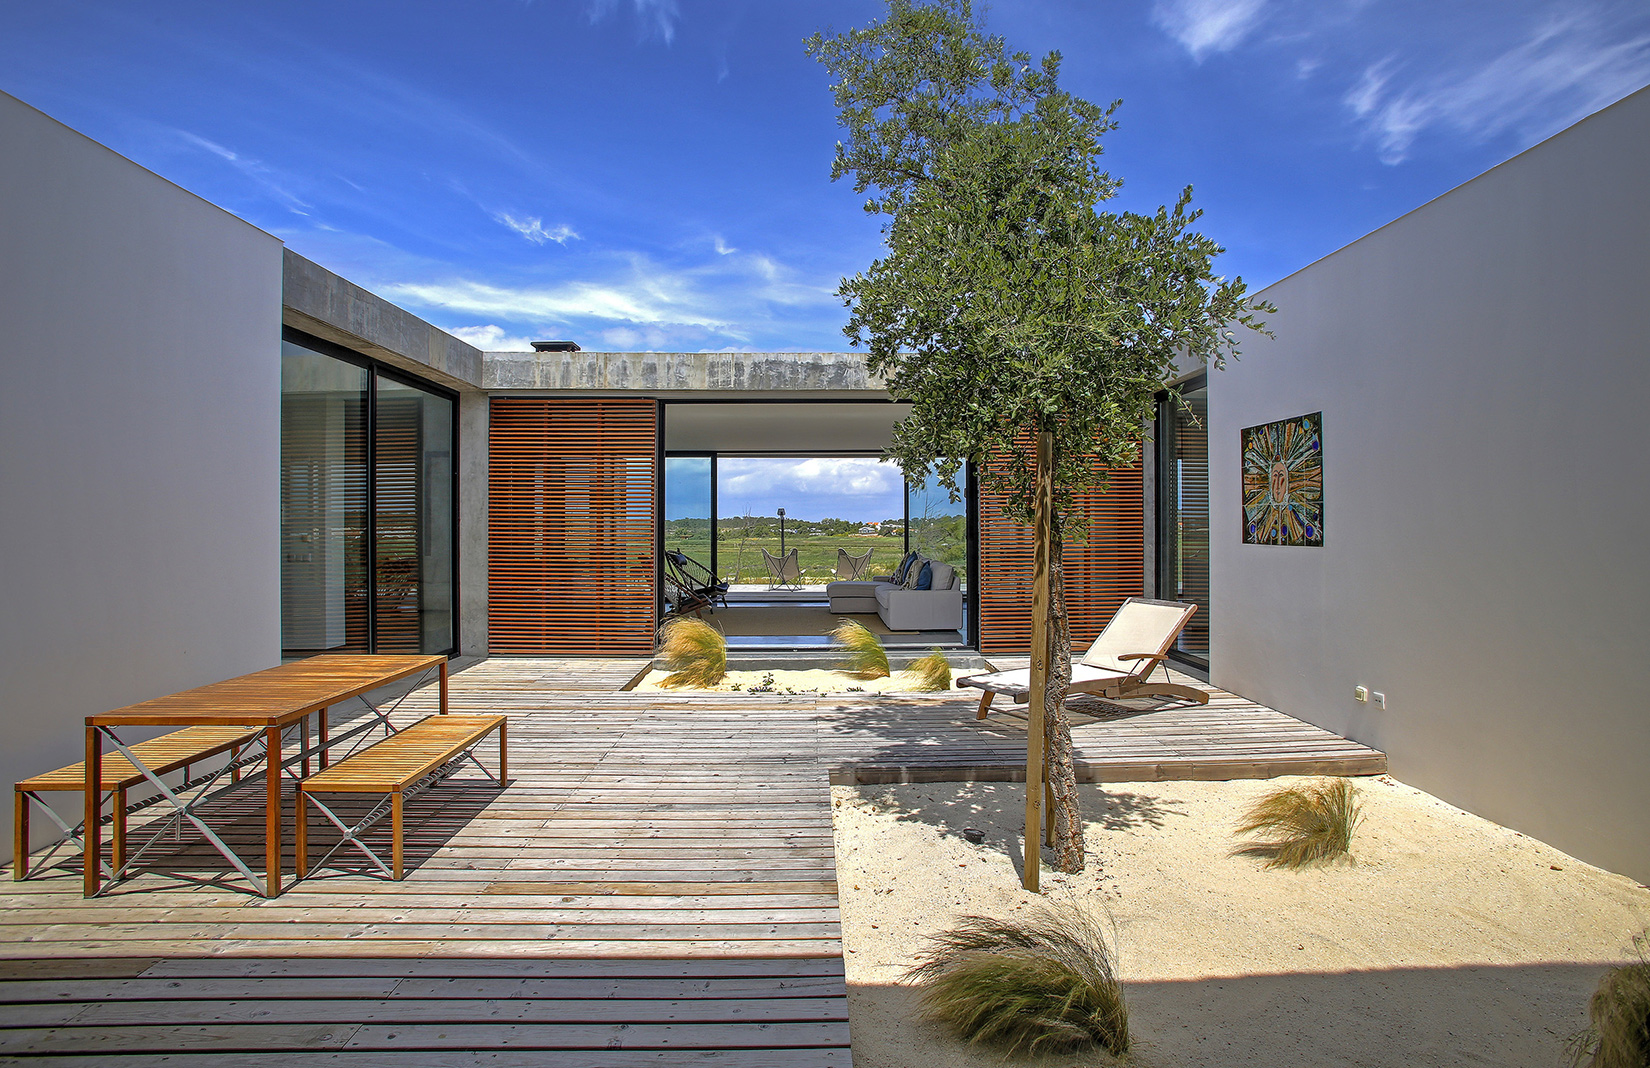 7 Modern Holiday Homes In Portugal The Spaces